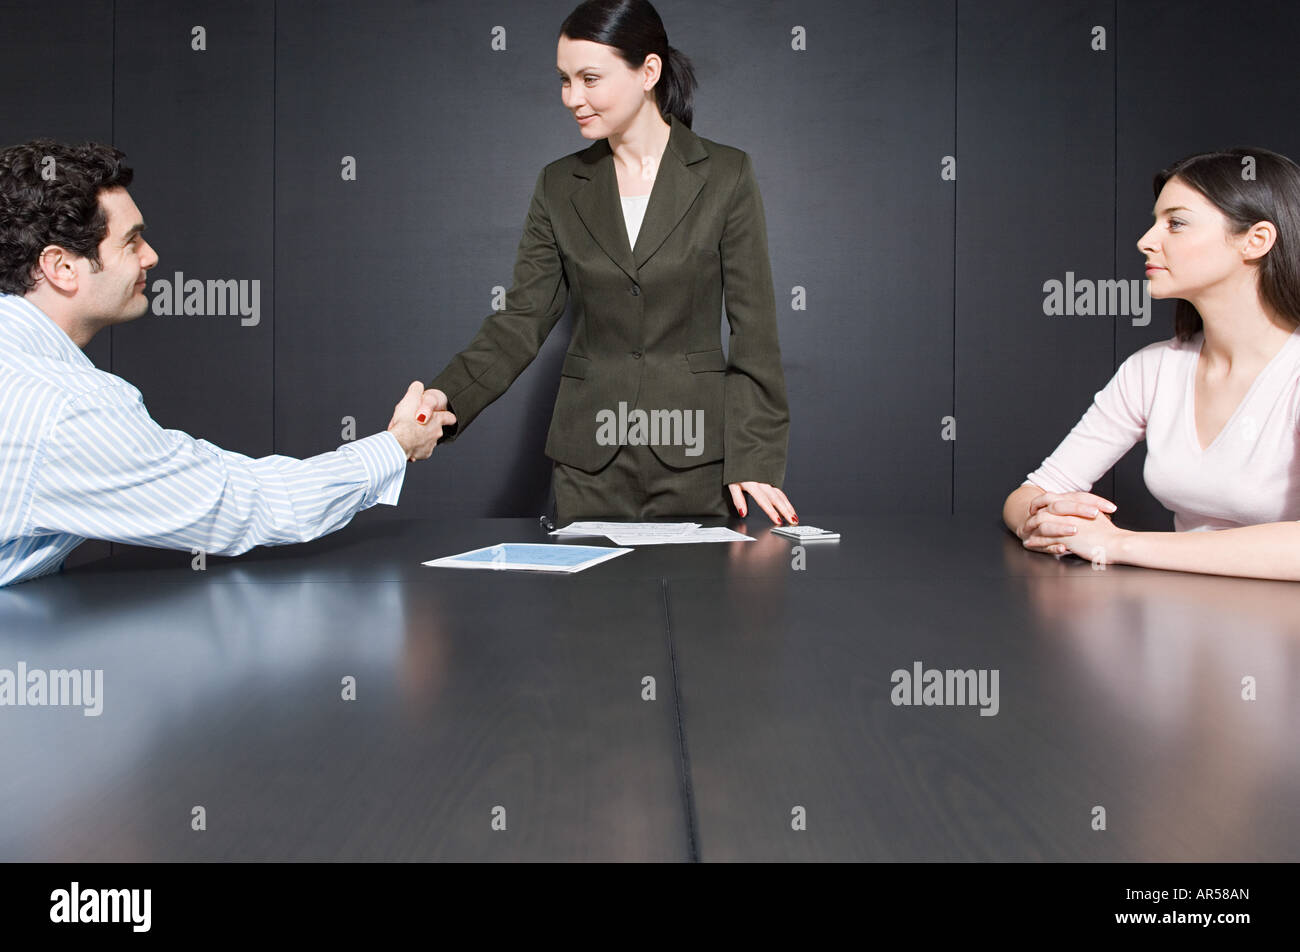 Man shaking hands with divorce lawyer - Stock Image